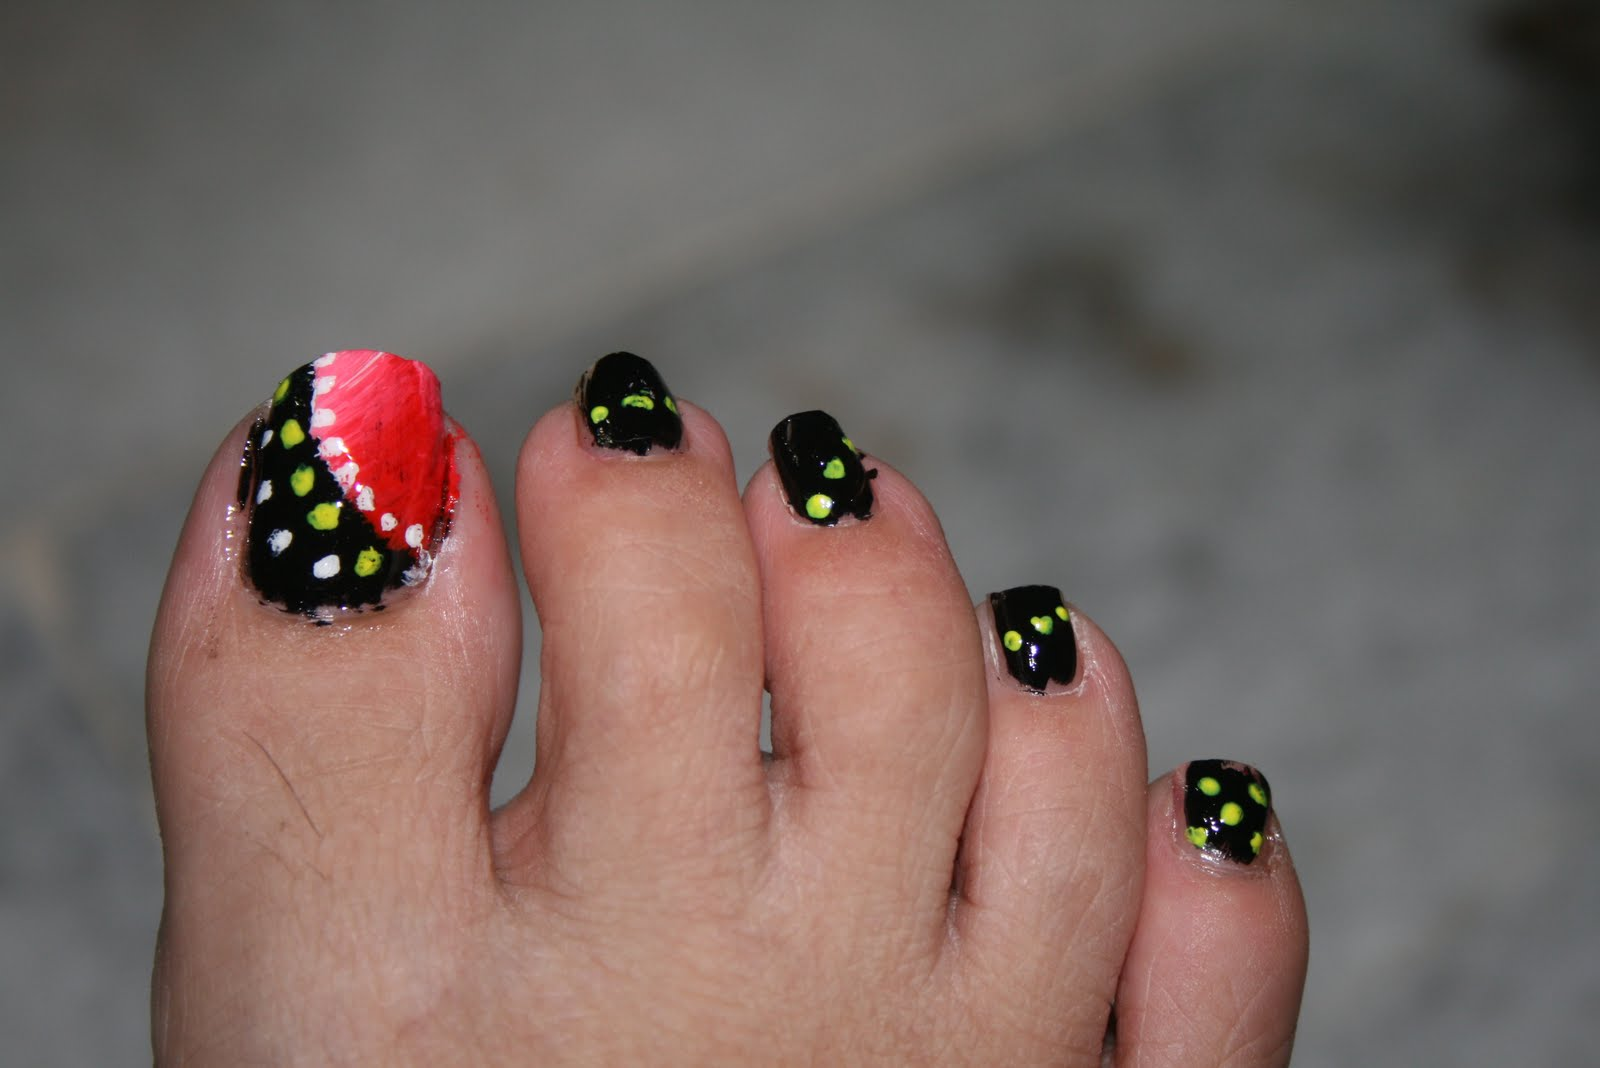 Nail Polish Designs Pictures | Nail Designs, Hair Styles, Tattoos ...